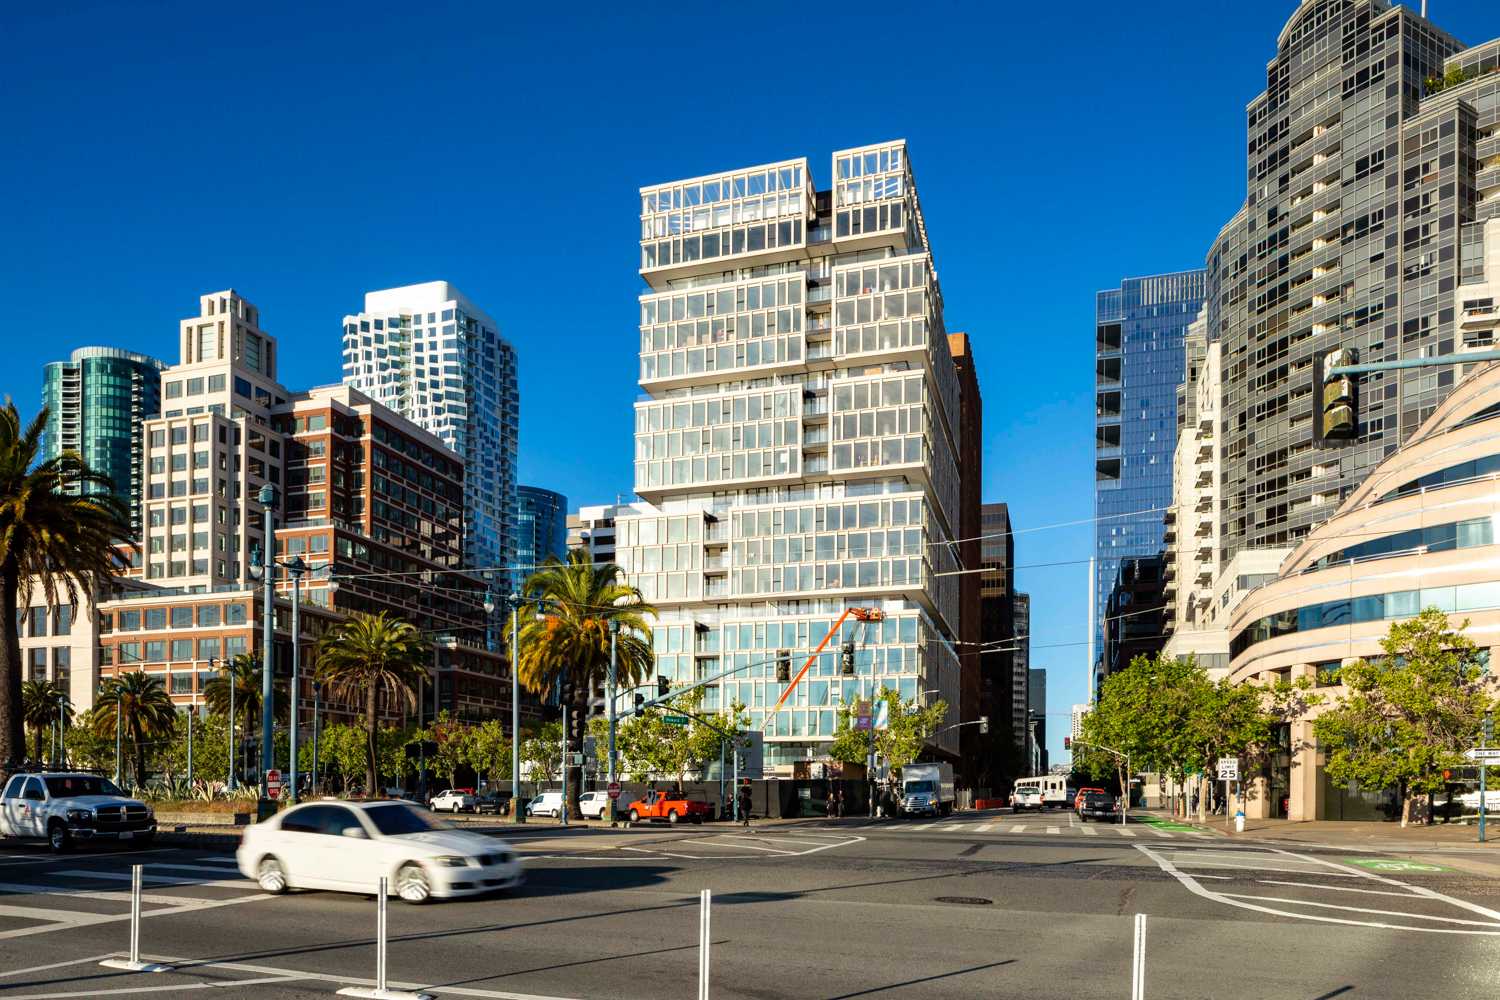 One Steuart Lane from across the Embarcadero with MIRA in the background, image by Andrew Campbell Nelson